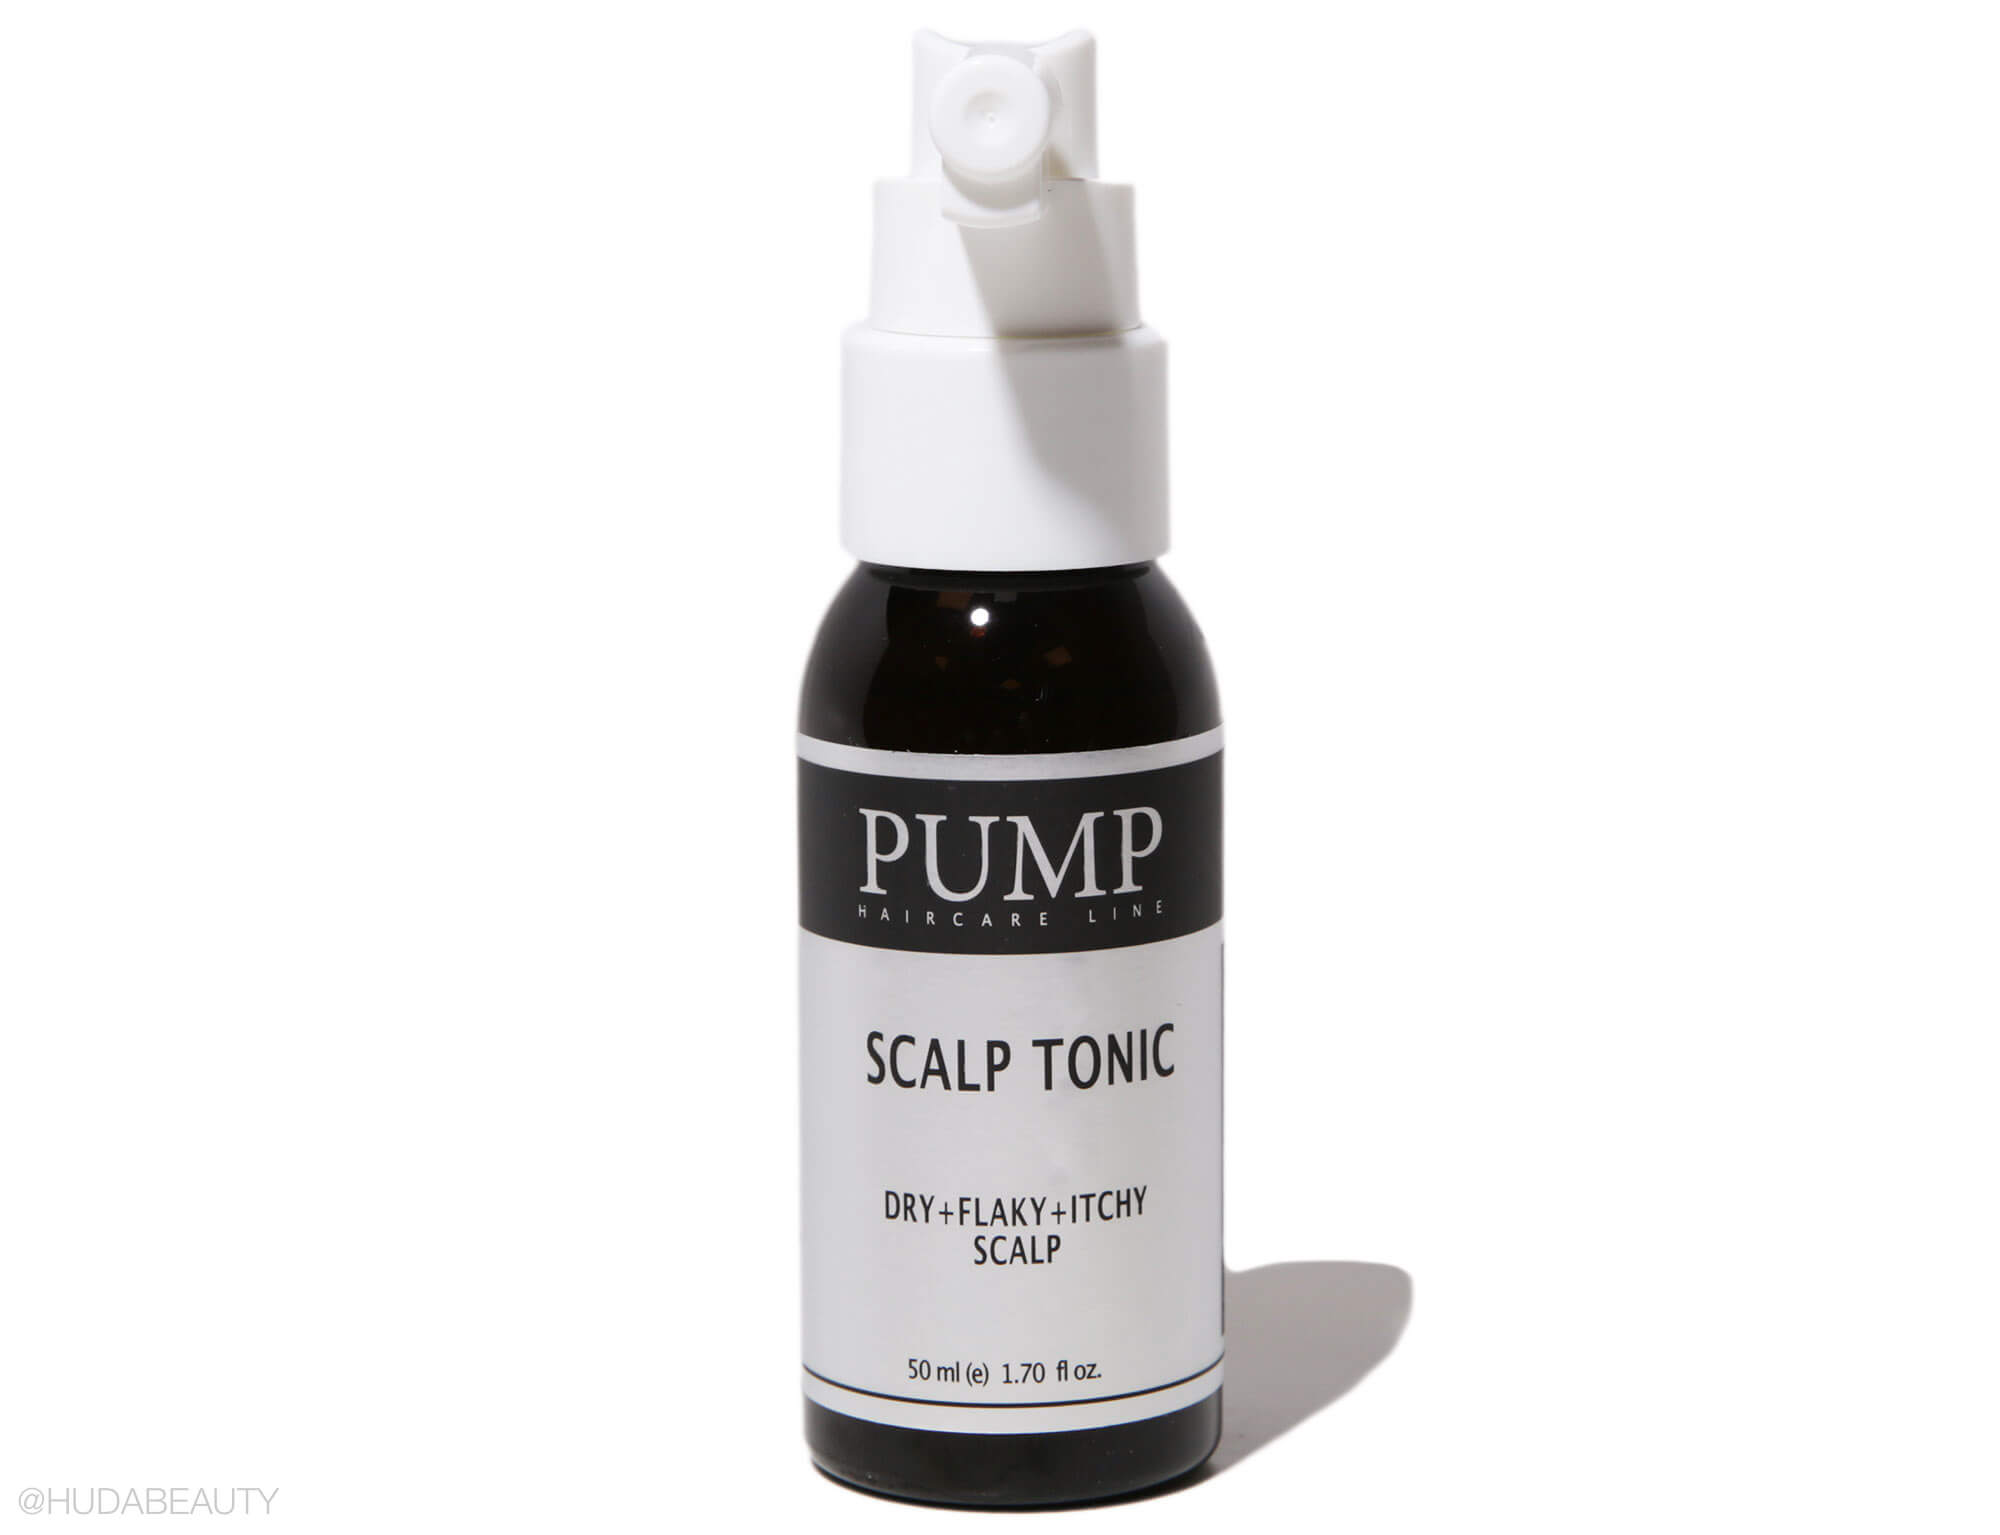 Pump Scalp Tonic